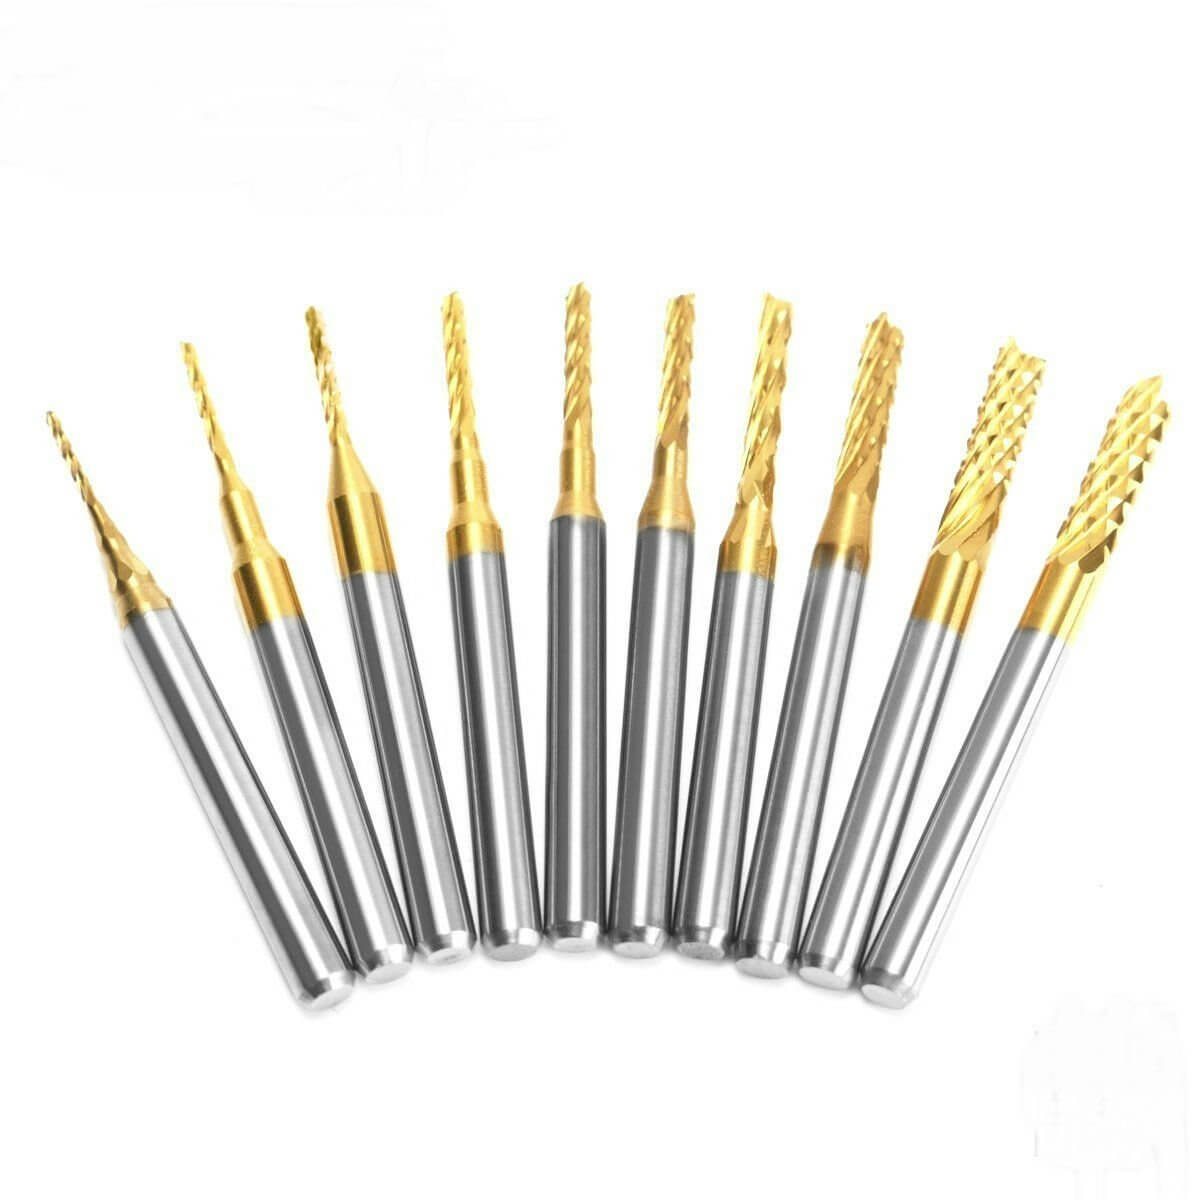 Mohoo 10pcs 1.5mm-3.175mm Carbide End Mill Engraving Bits For CNC Rotary Burrs